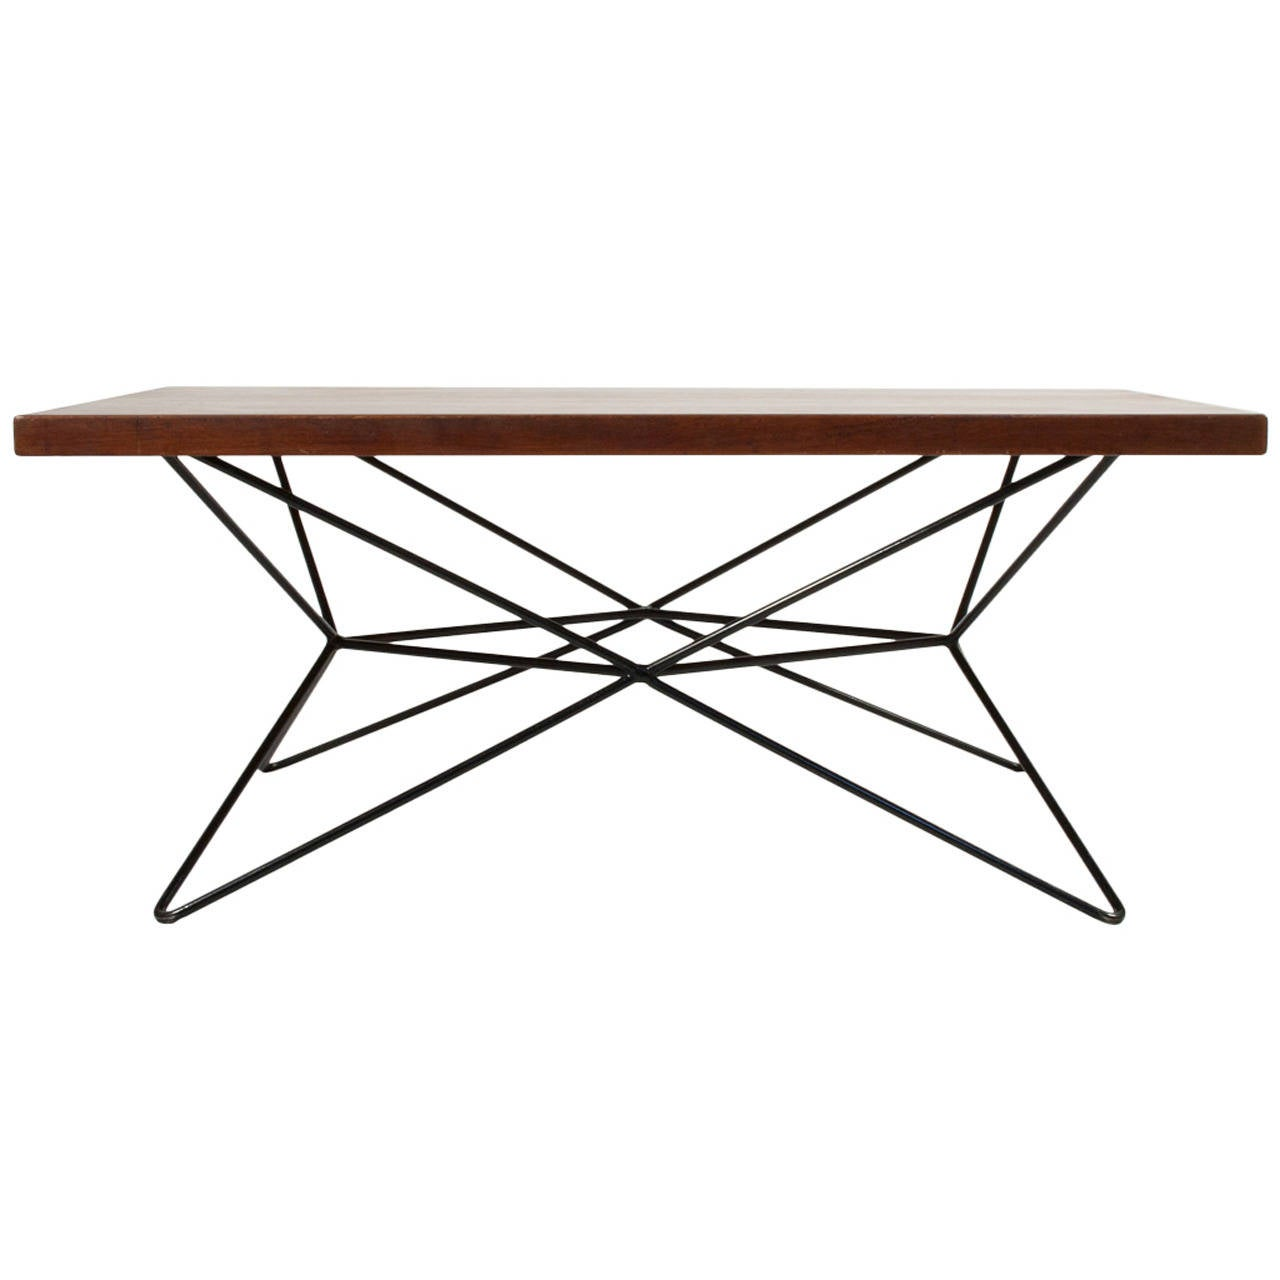 Adjustable coffee table at 1stdibs for Adjustable coffee table